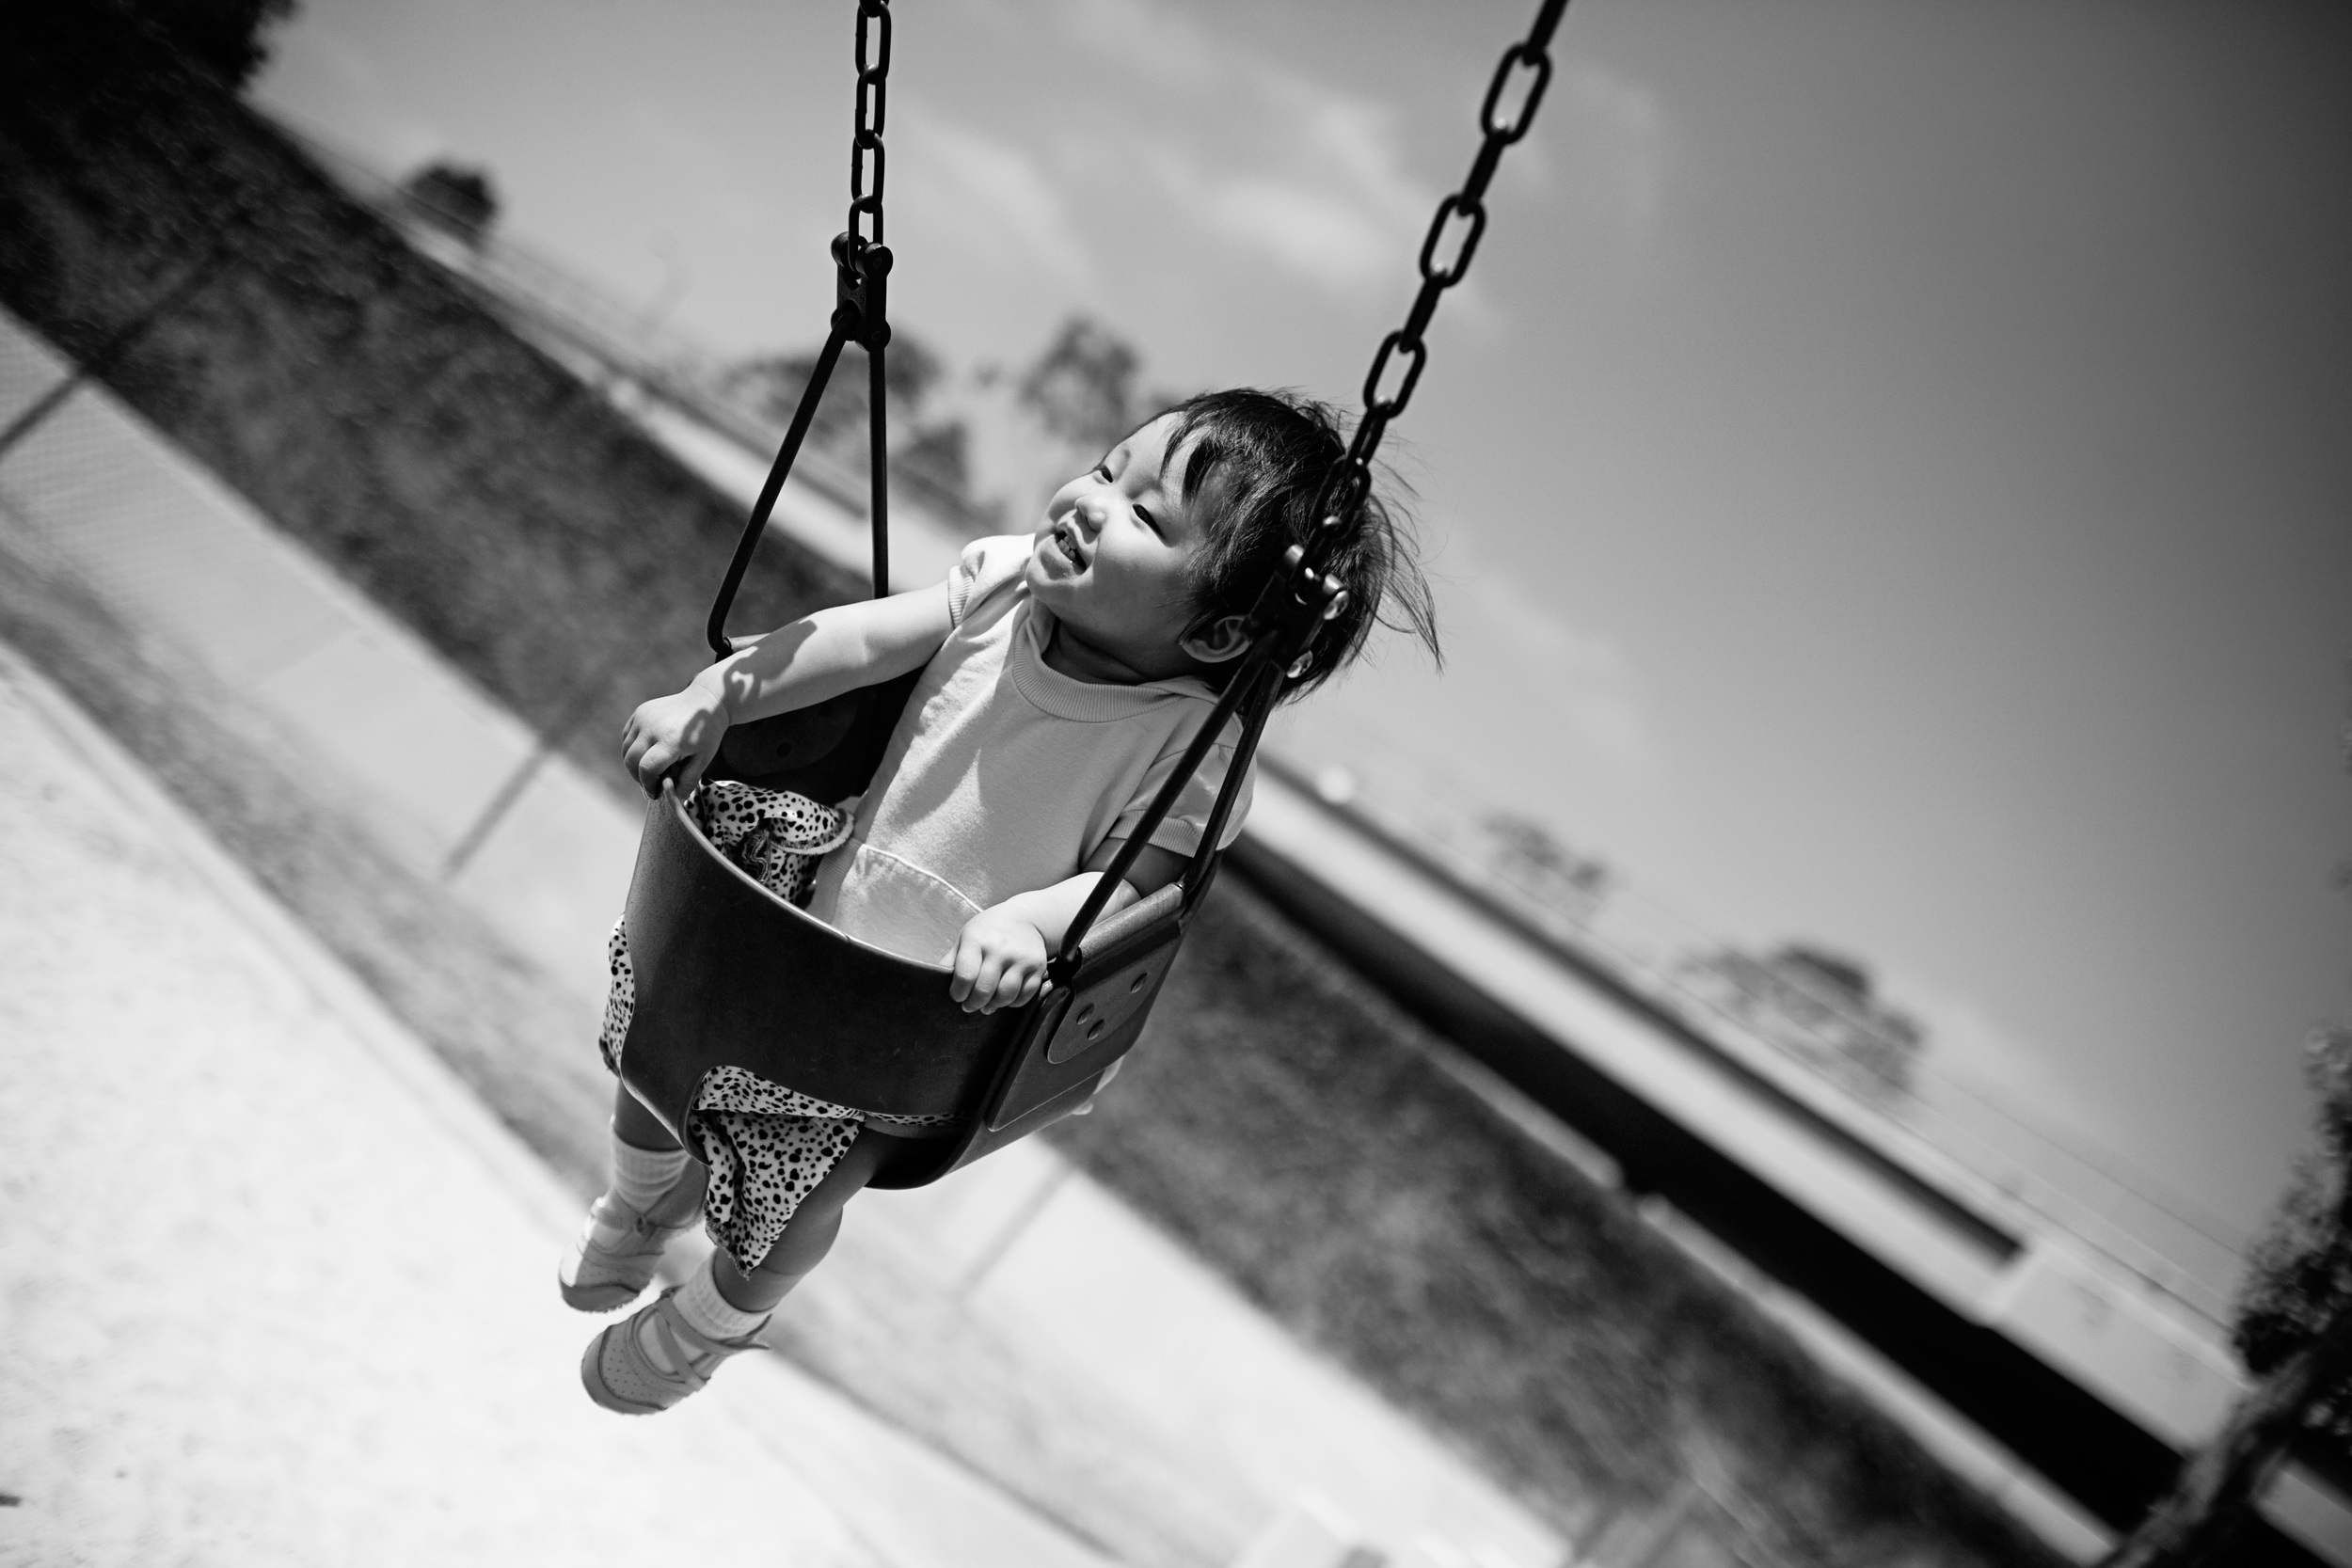 Kailee enjoys the swings at a playground.